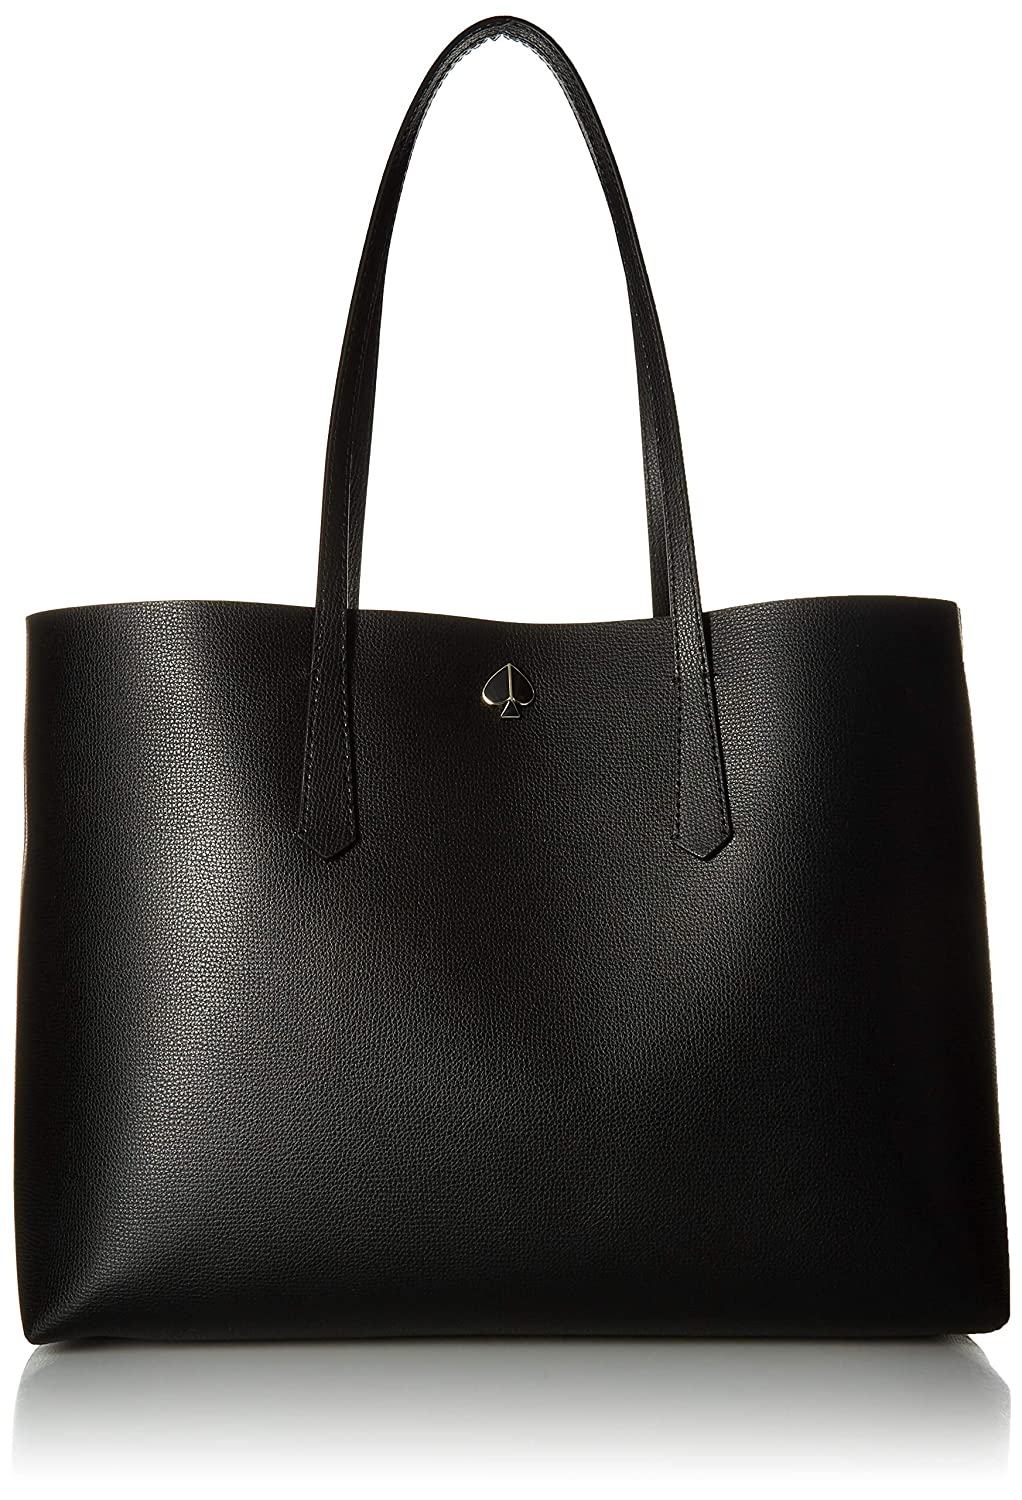 bd646c2e3f38c Amazon.com: Kate Spade New York Women's Molly Large Tote, Black, One Size:  Shoes